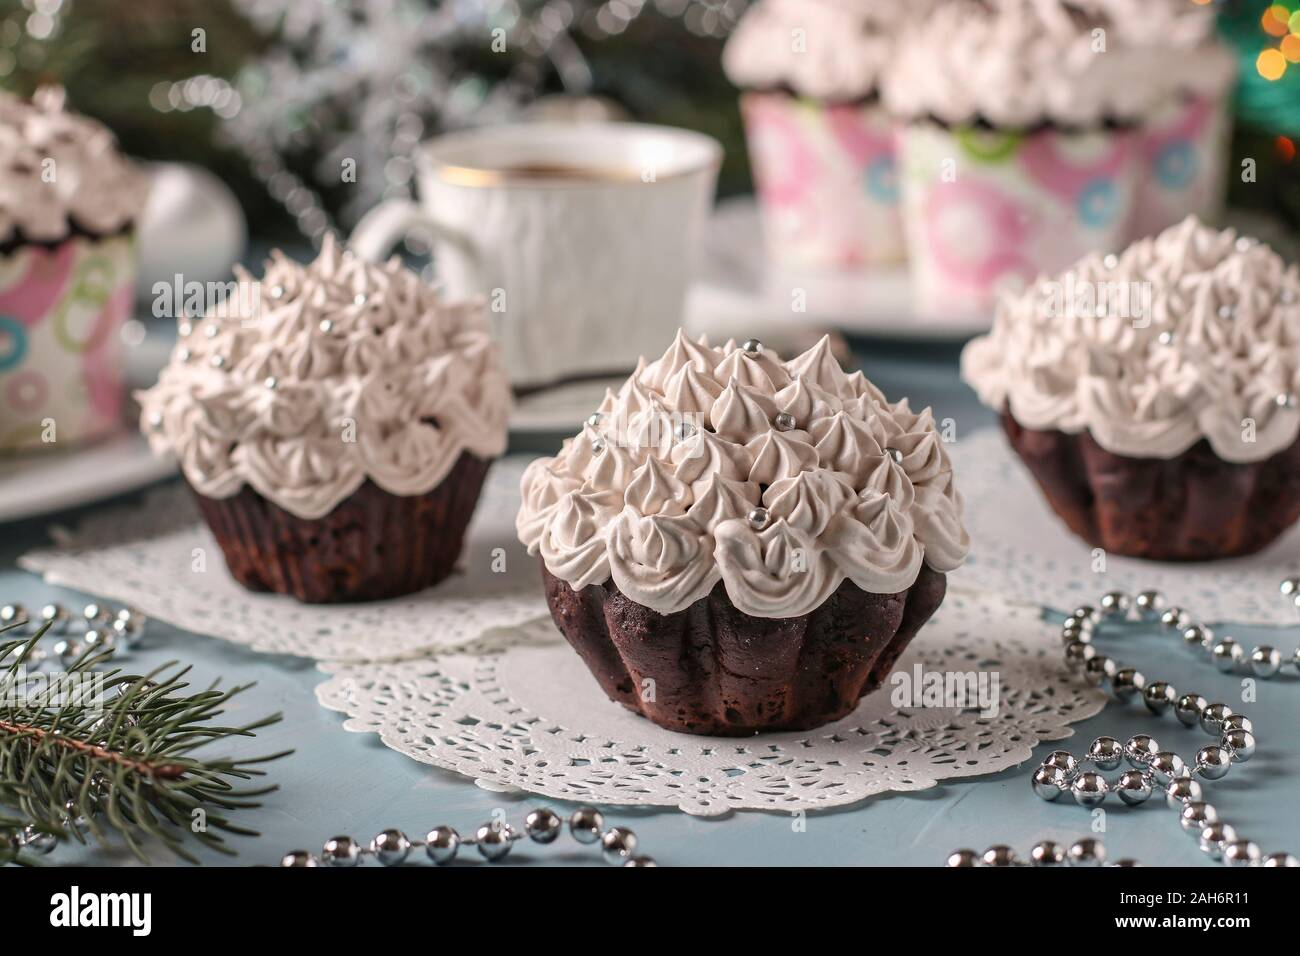 Homemade chocolate cupcakes with cream and a cup of coffee arranged on a light blue background, horizontal orientation Stock Photo